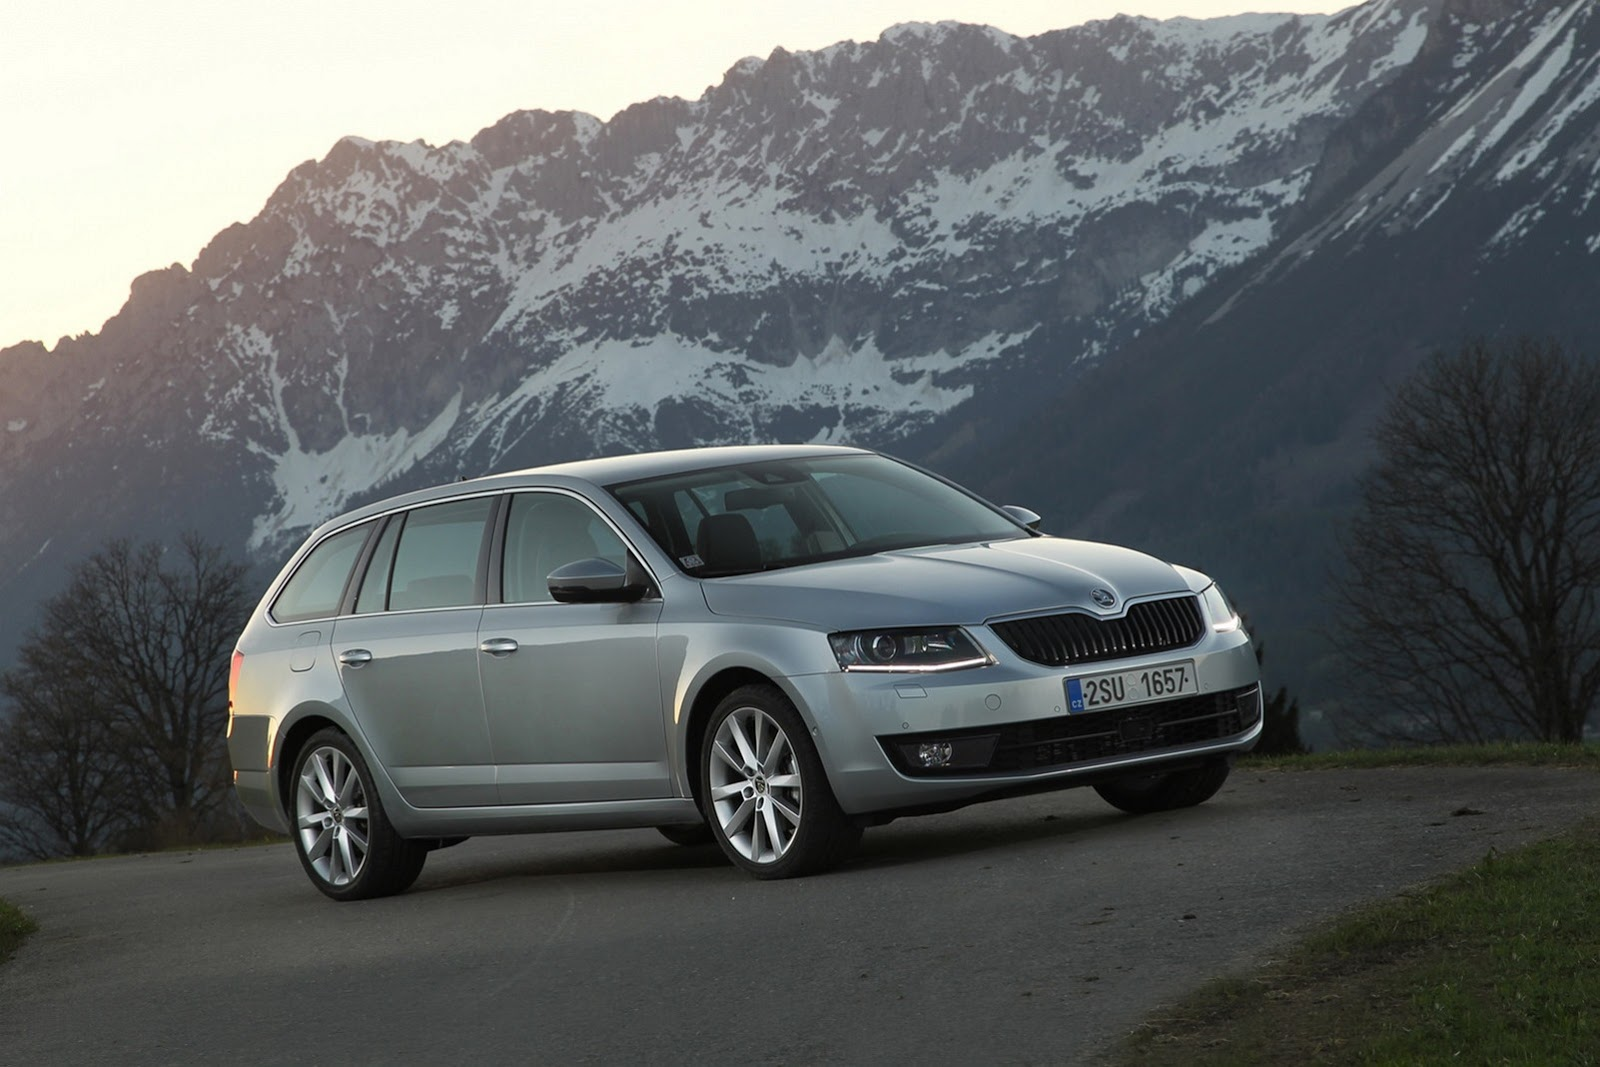 skoda octavia combi 4x4 revealed in new images autoevolution. Black Bedroom Furniture Sets. Home Design Ideas